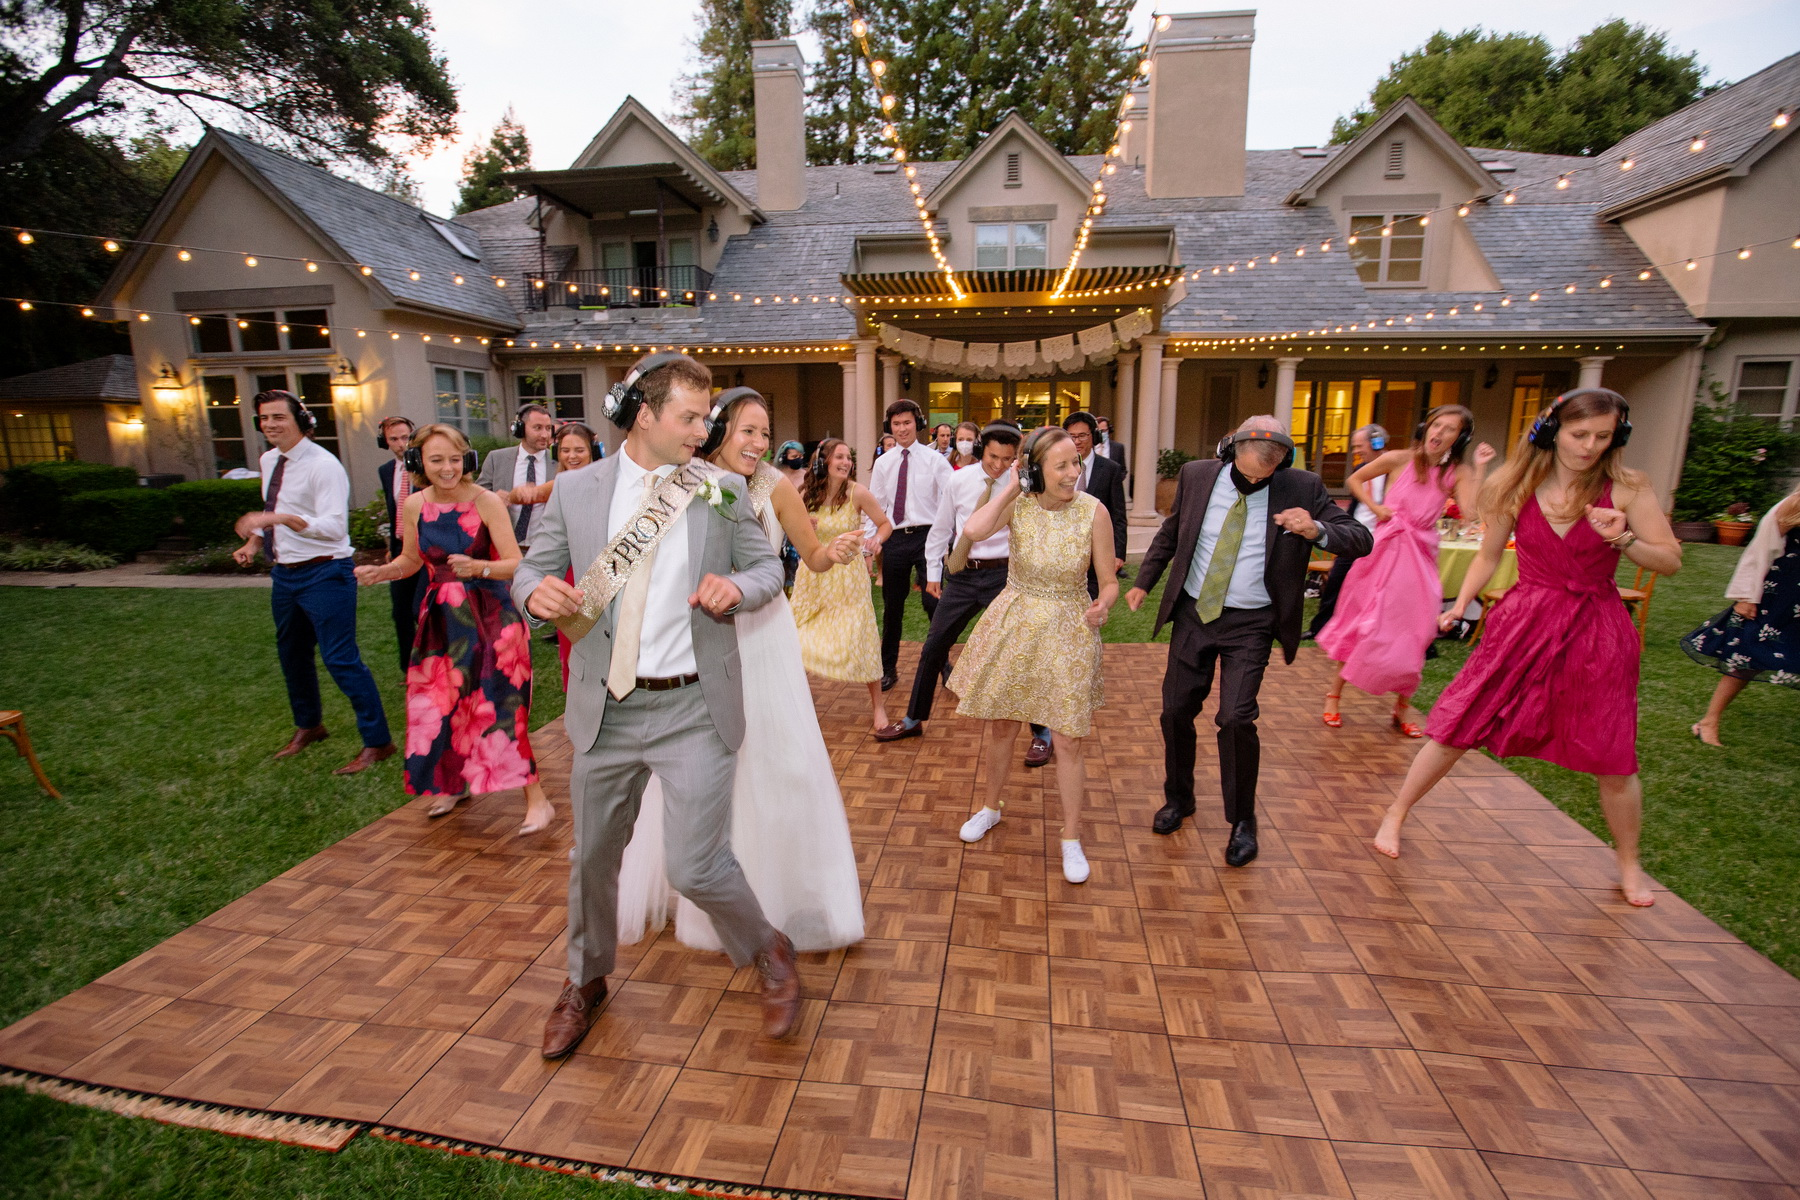 guests dancing to a silent disco at a backyard wedding